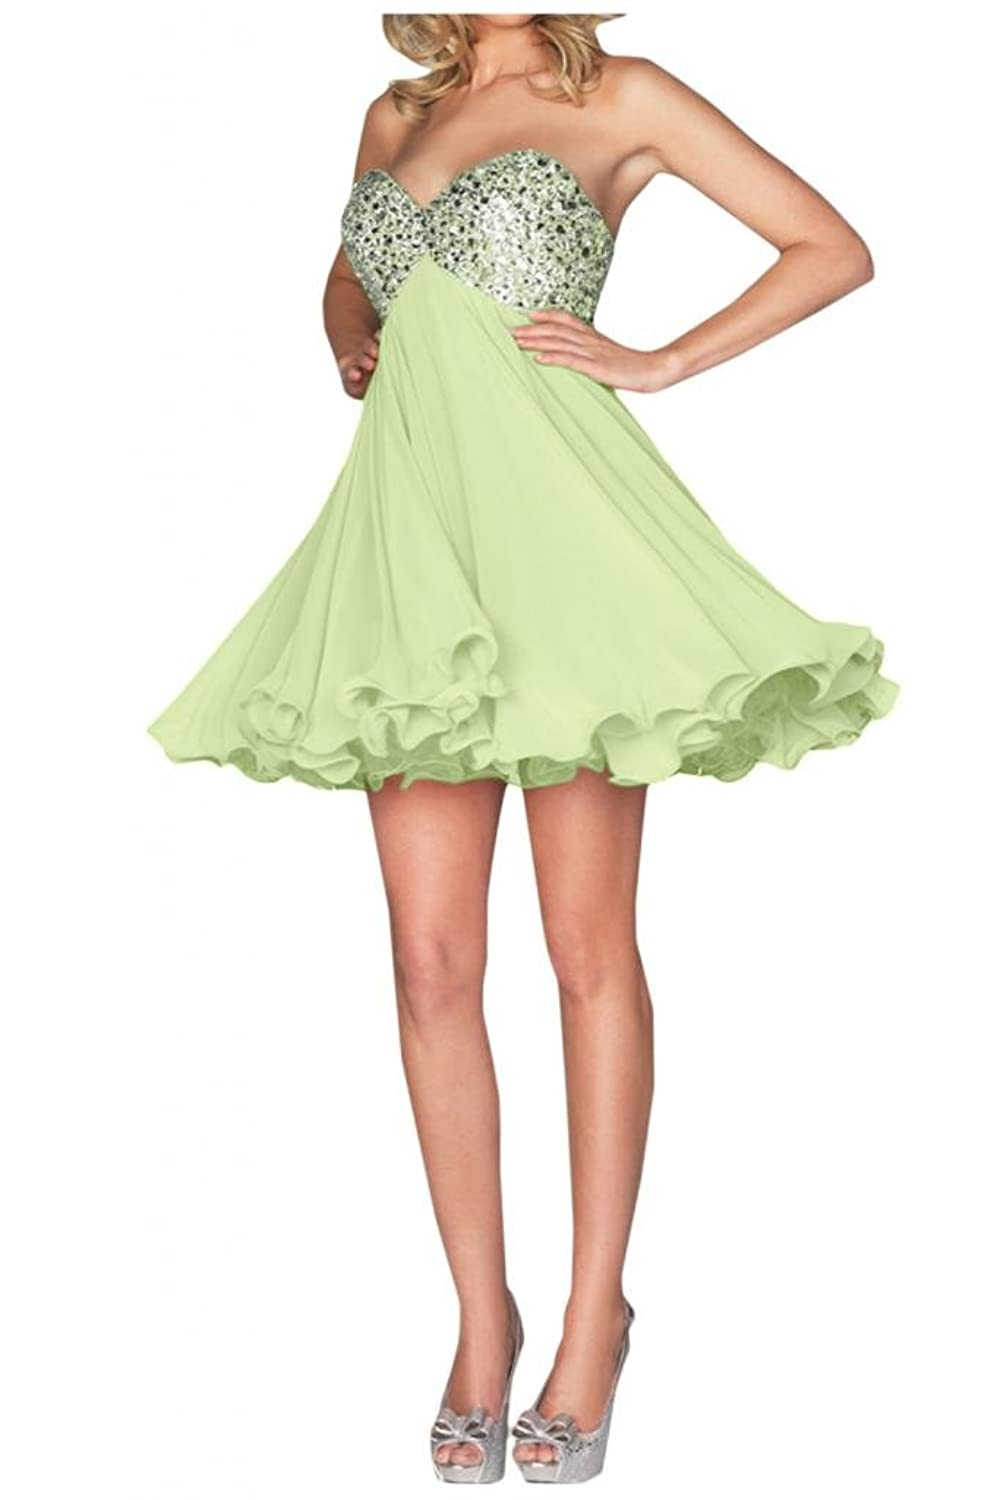 Gorgeous Bride Sequin Sweetheart Short Chiffon Party Cocktail Dress Lace-up